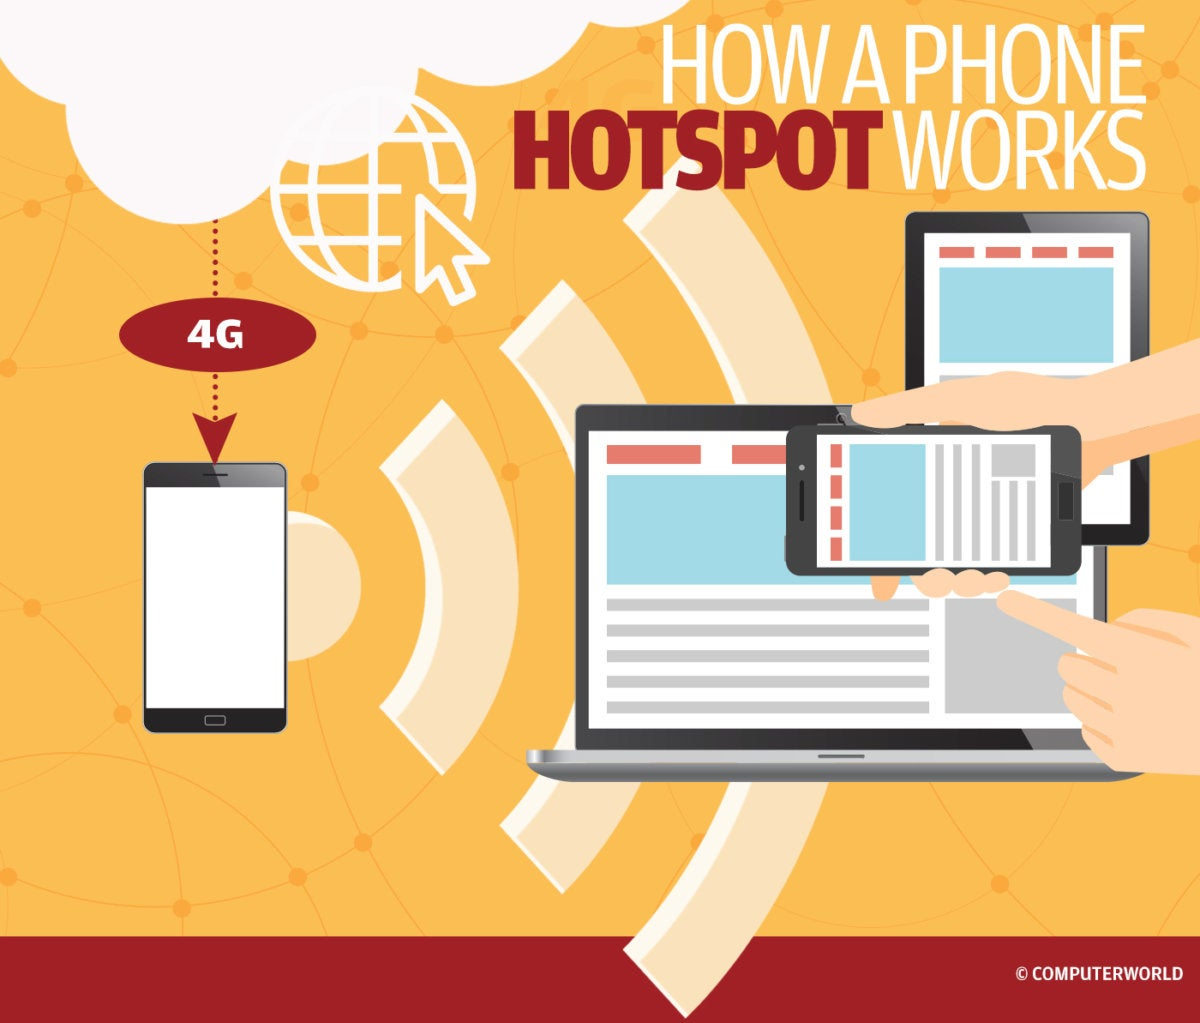 How to use a smartphone as a mobile hotspot | Computerworld